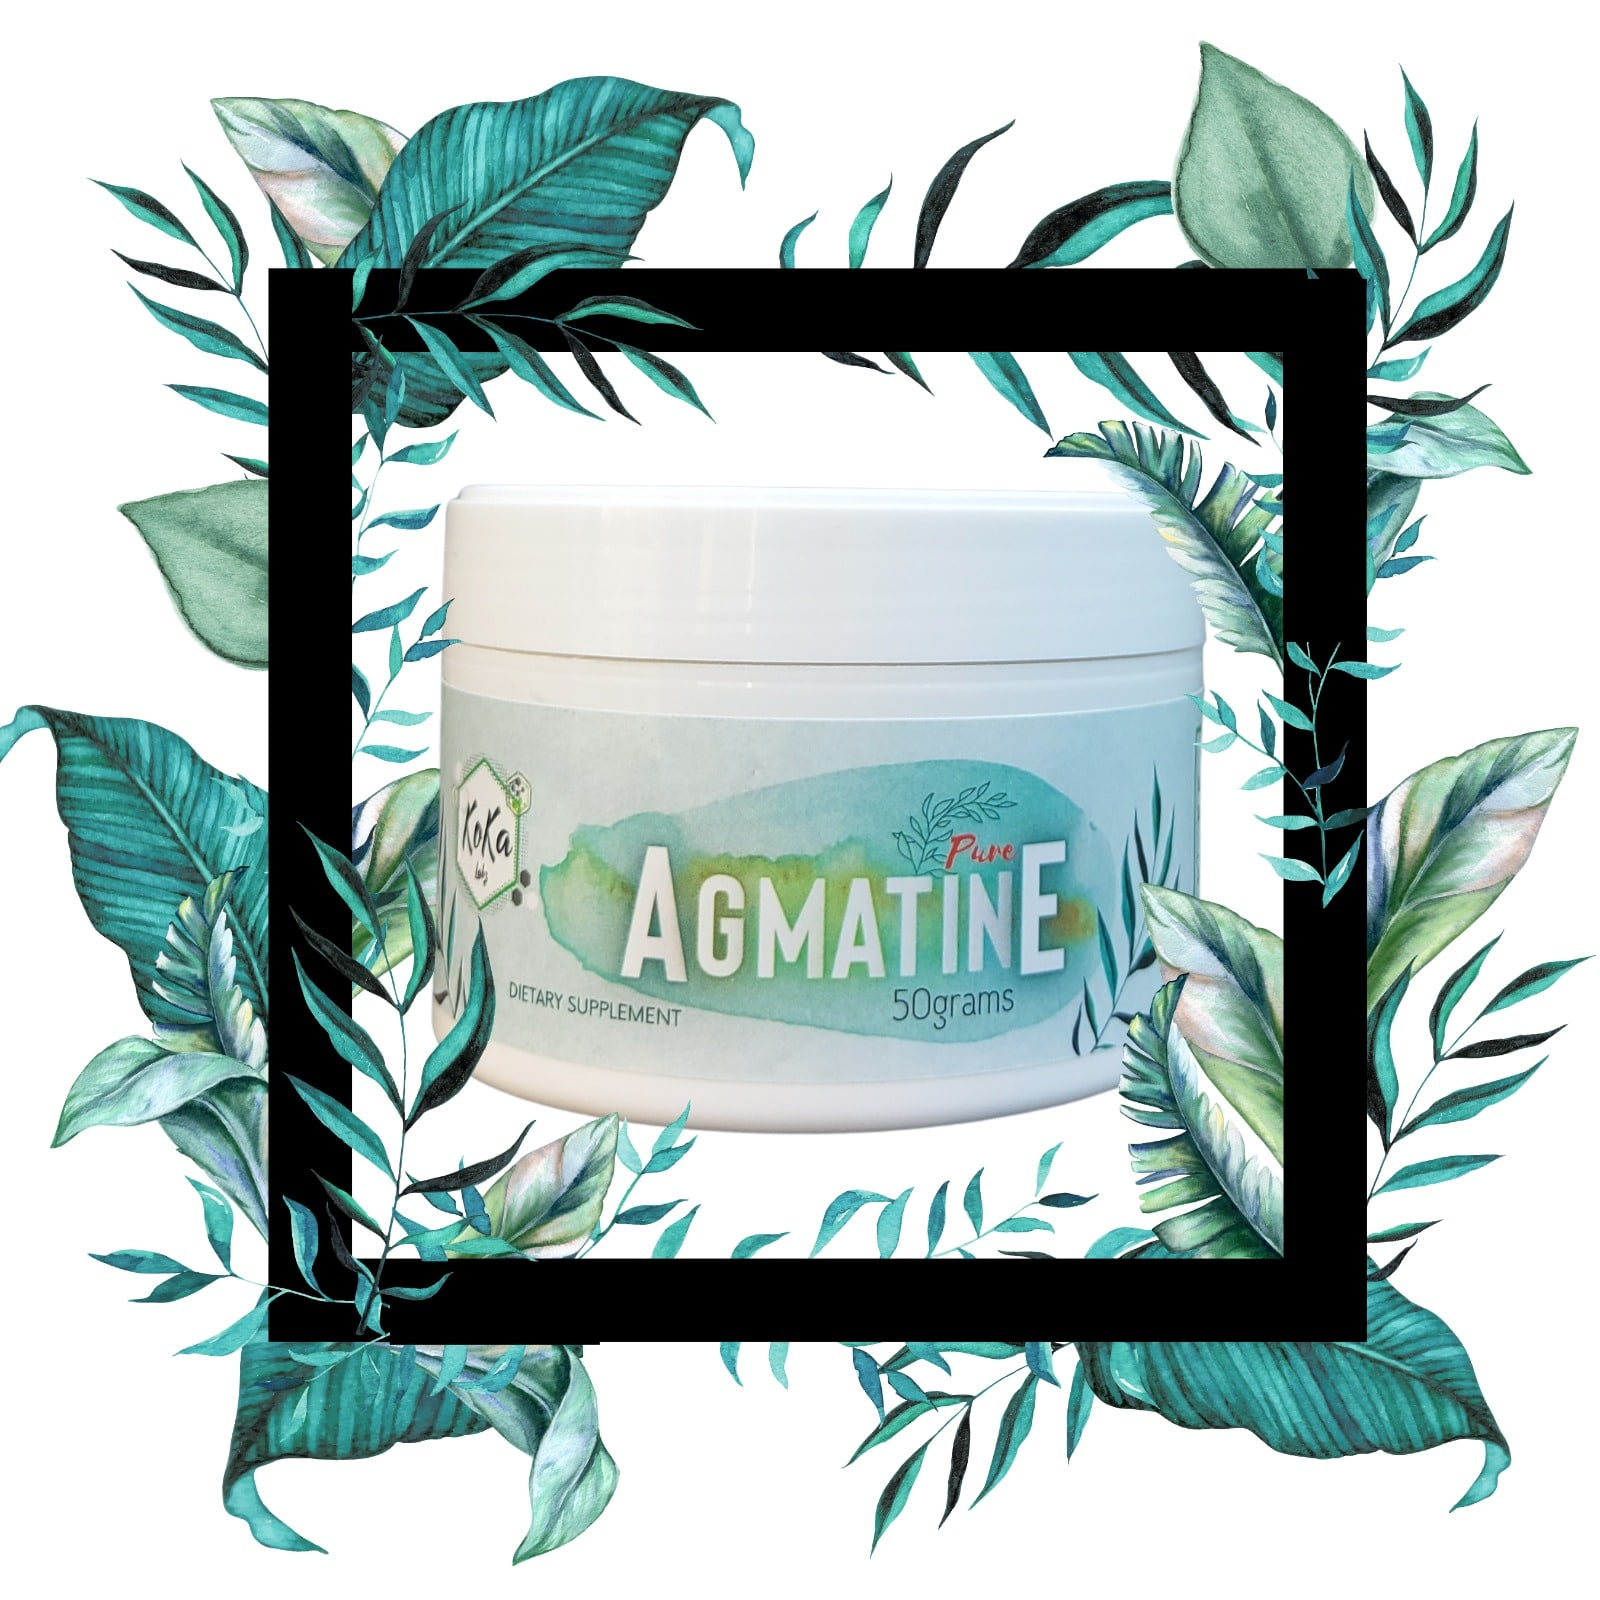 Agmatine-is it really worth it?